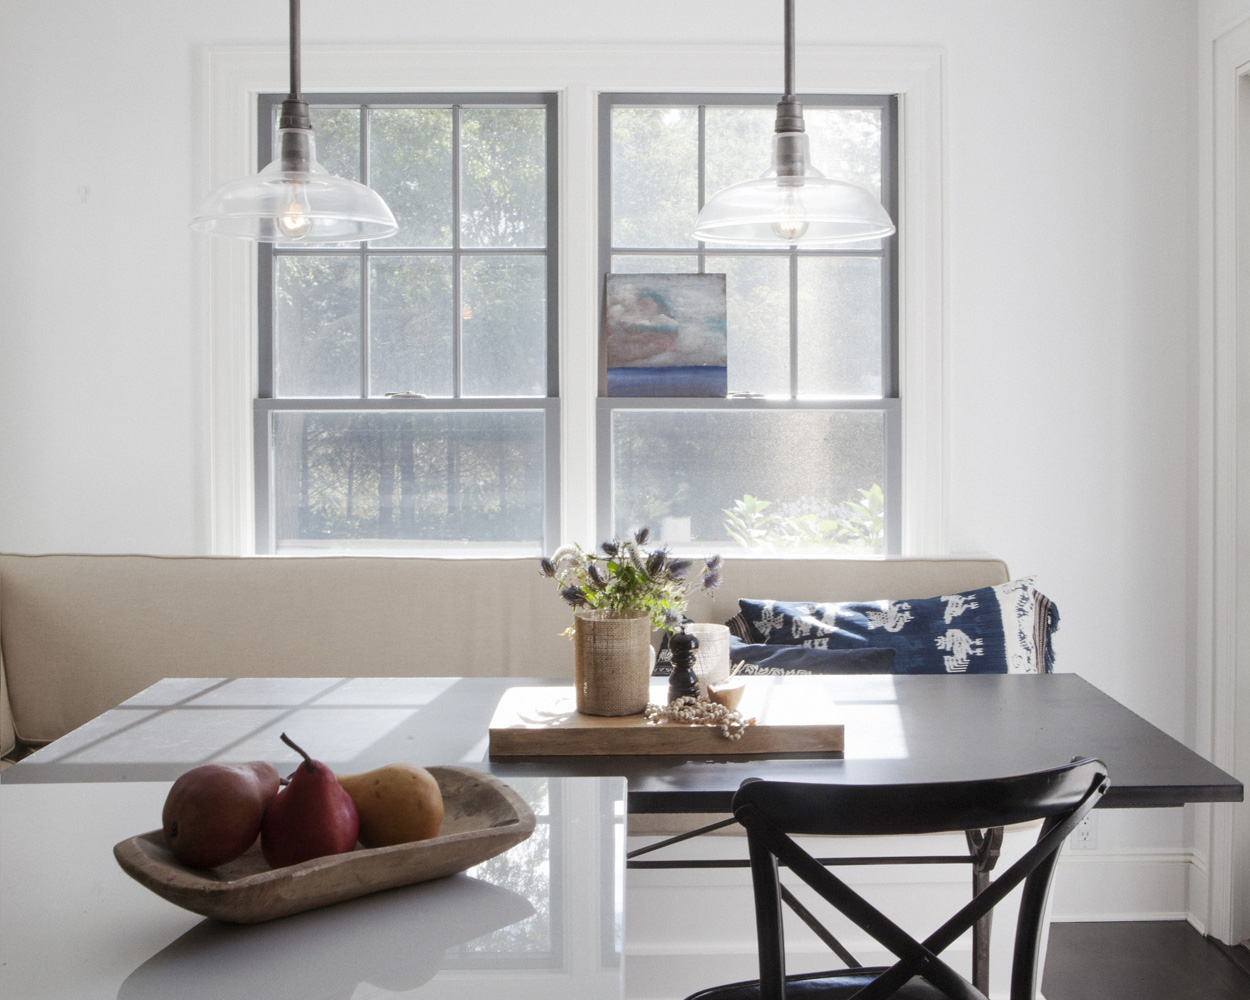 Farrin_West_Hamptons_Interior_Design_Gardiners_Bay_Summer_Home_004.jpg